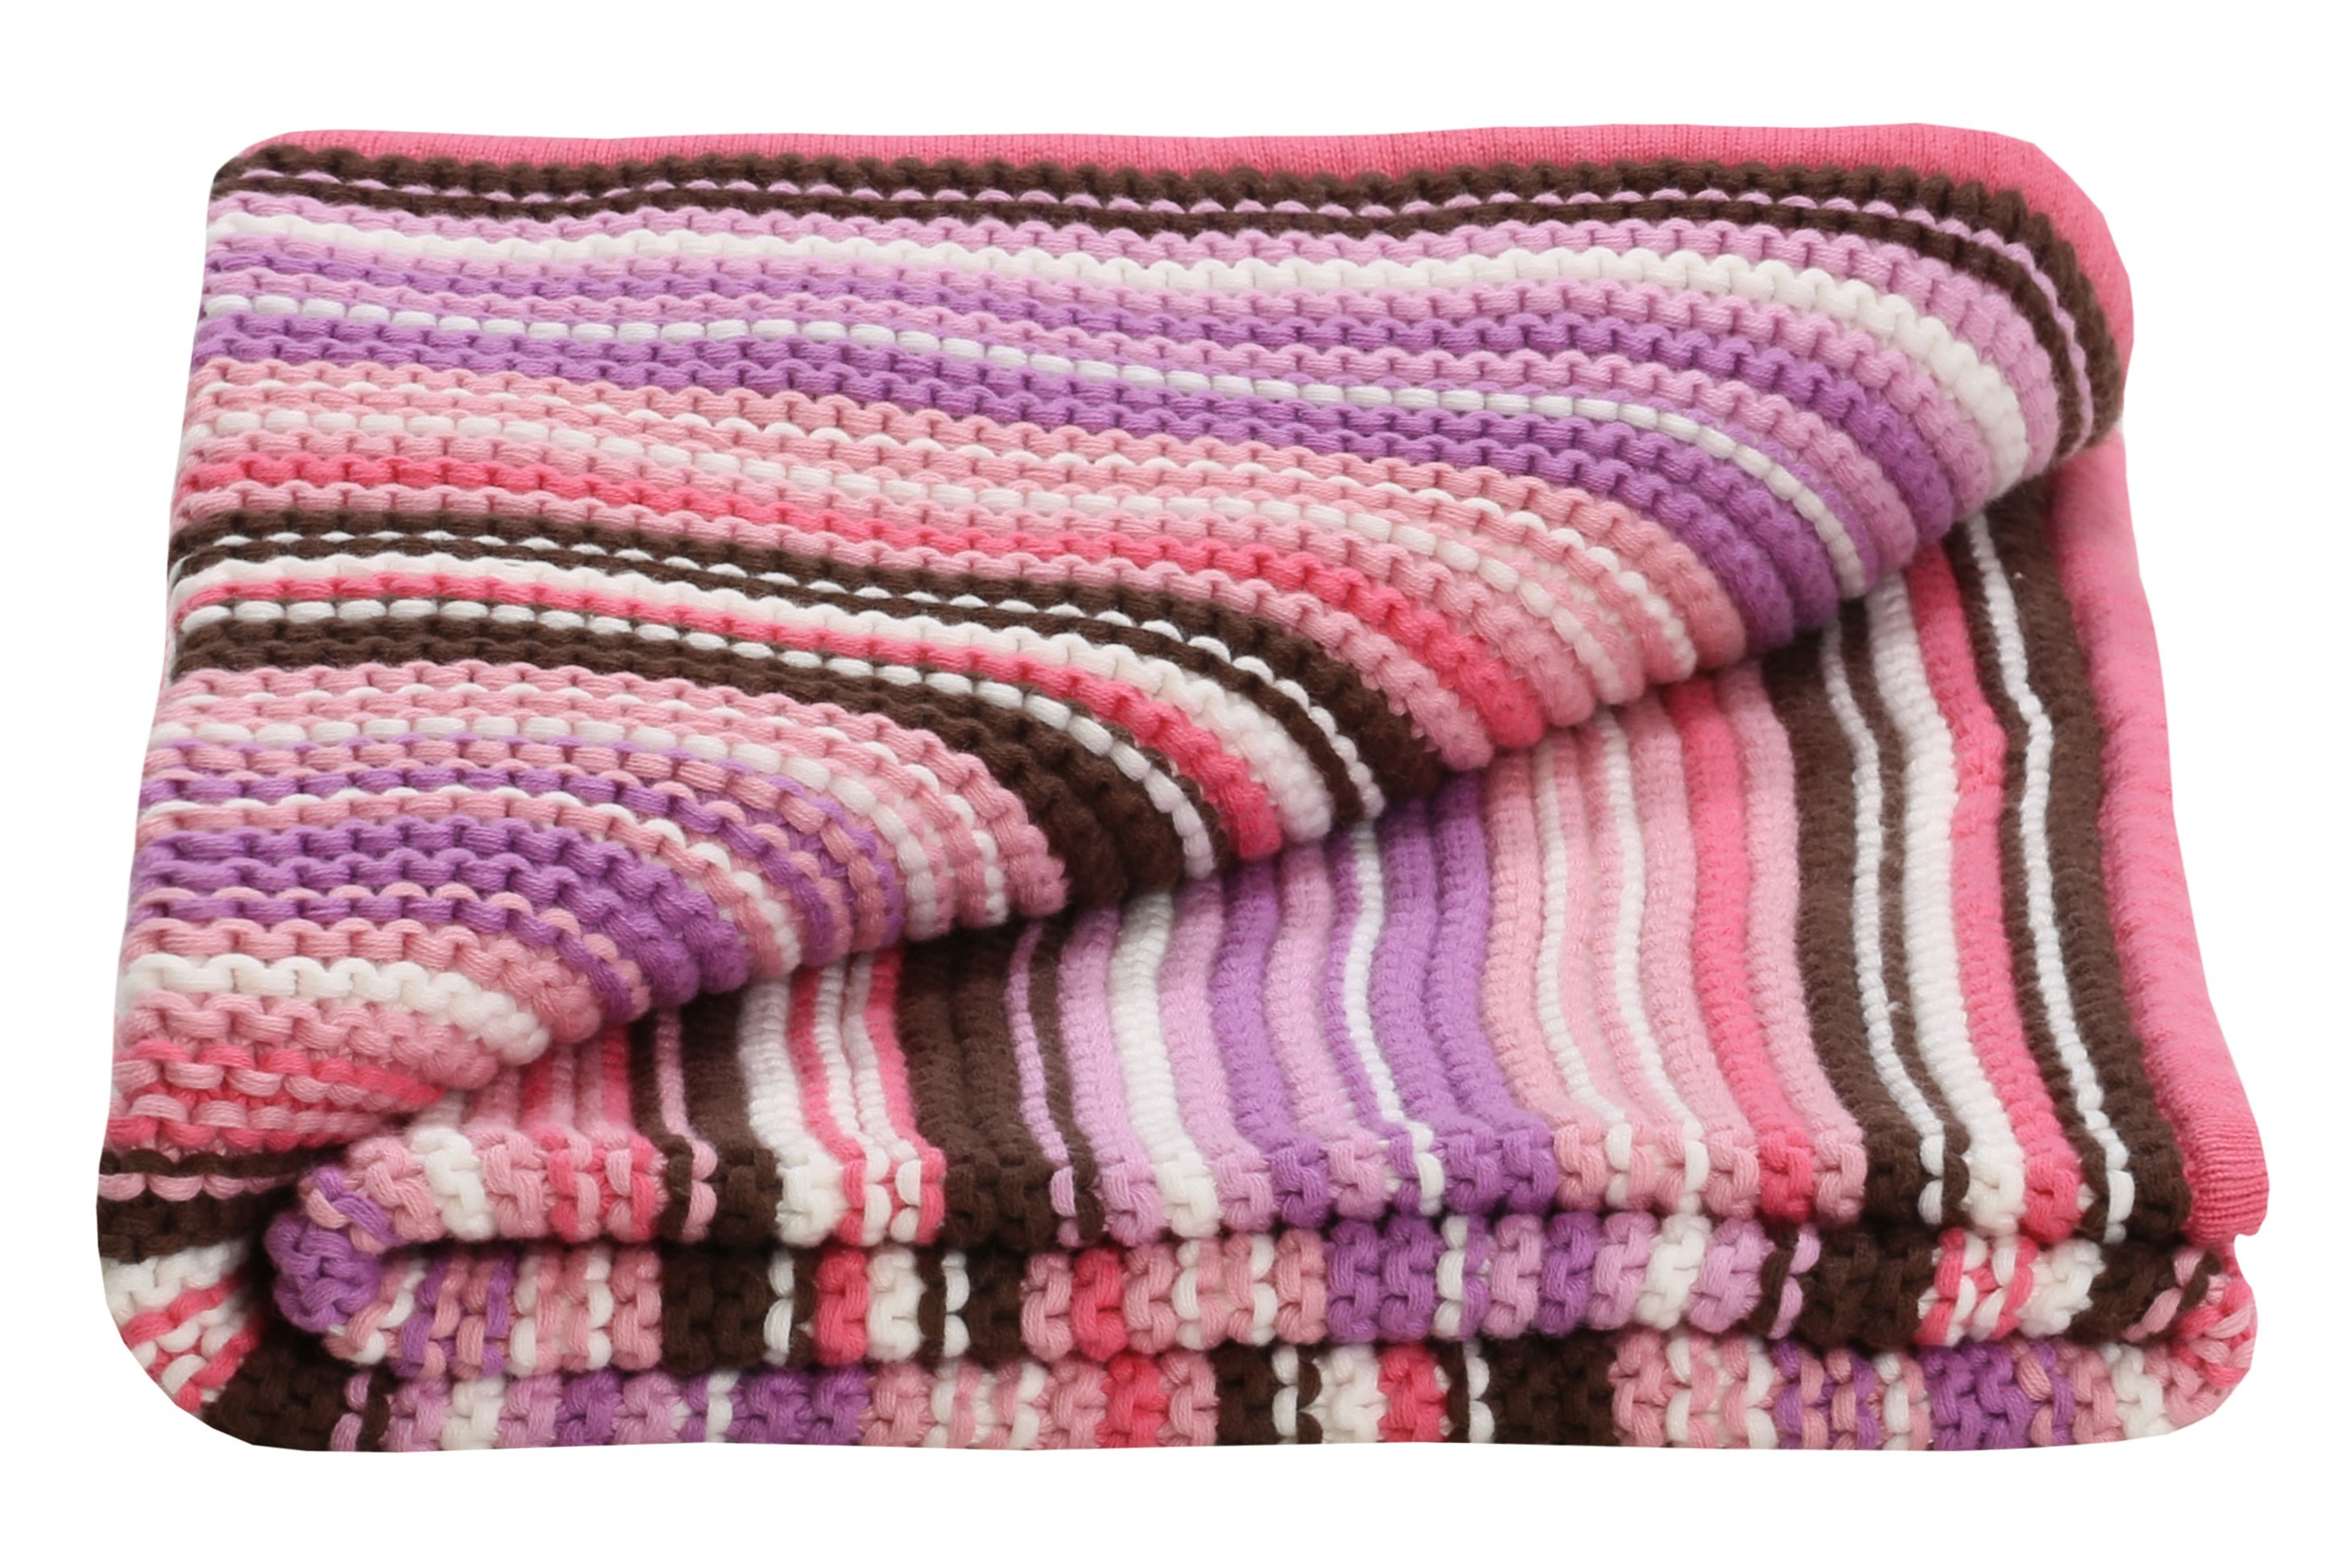 Baby Girls Knitted blanket ideal baby gift incl. free card